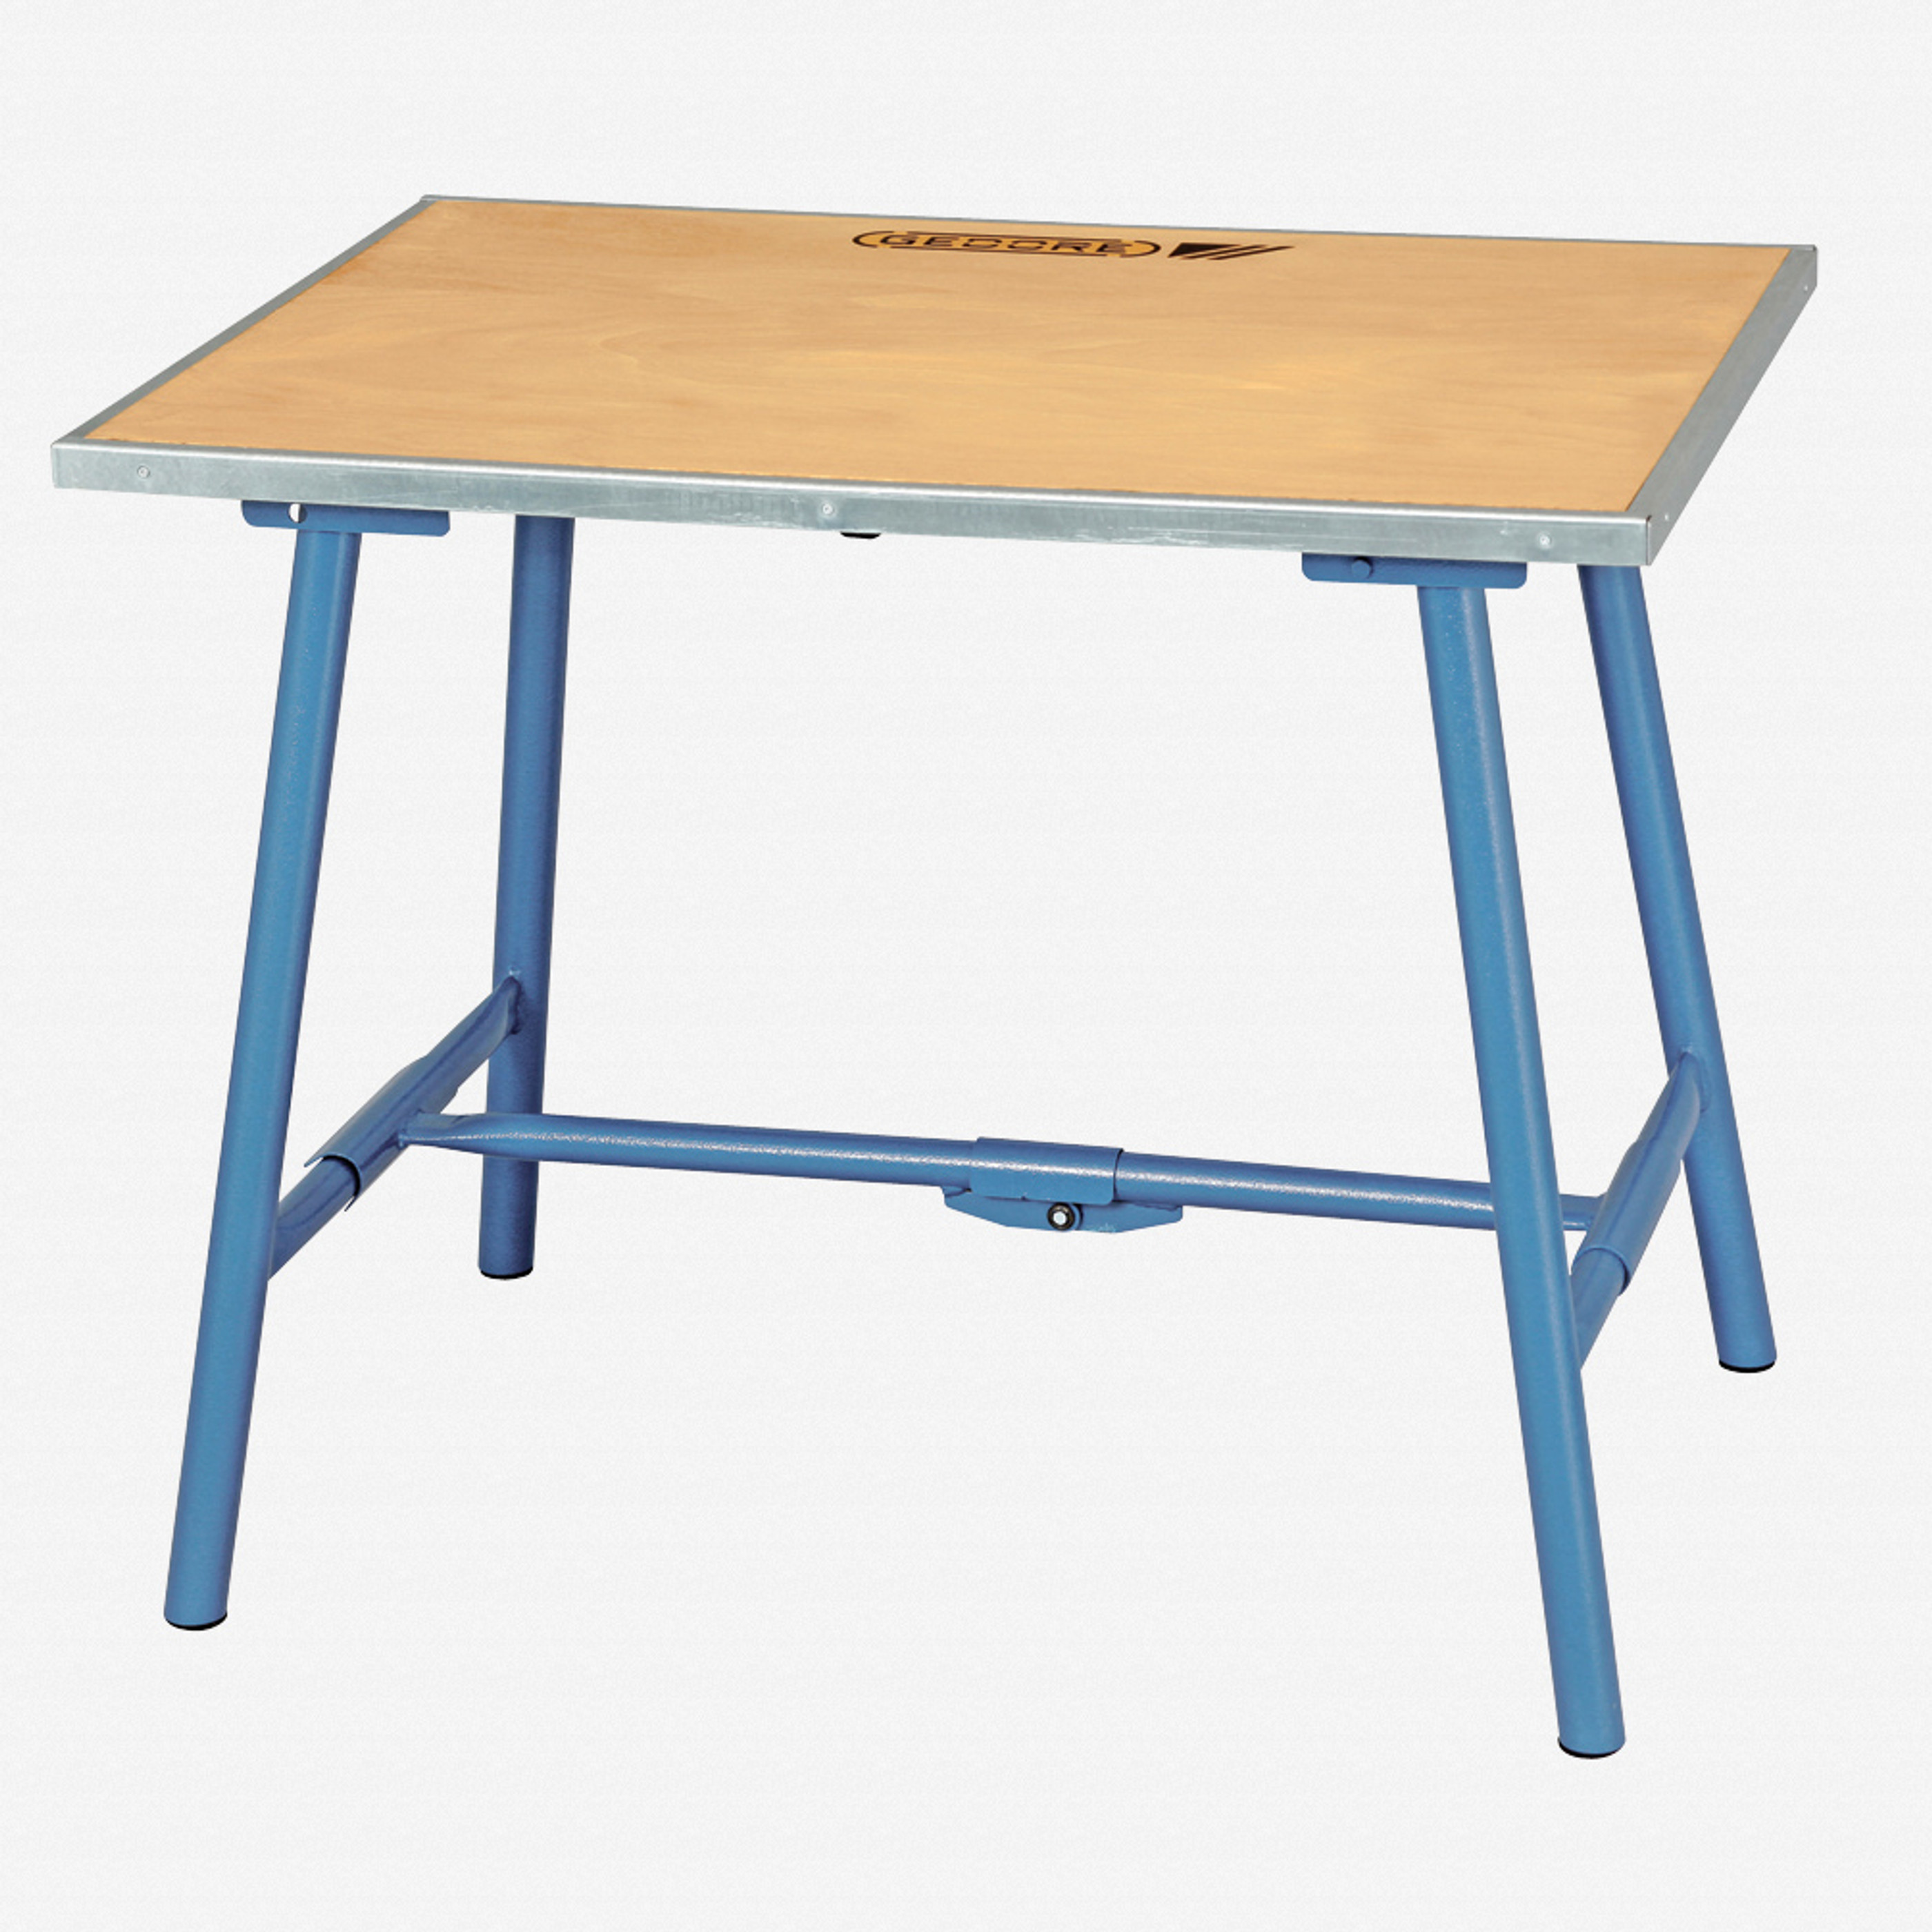 Gedore B 1525 Folding Workbench